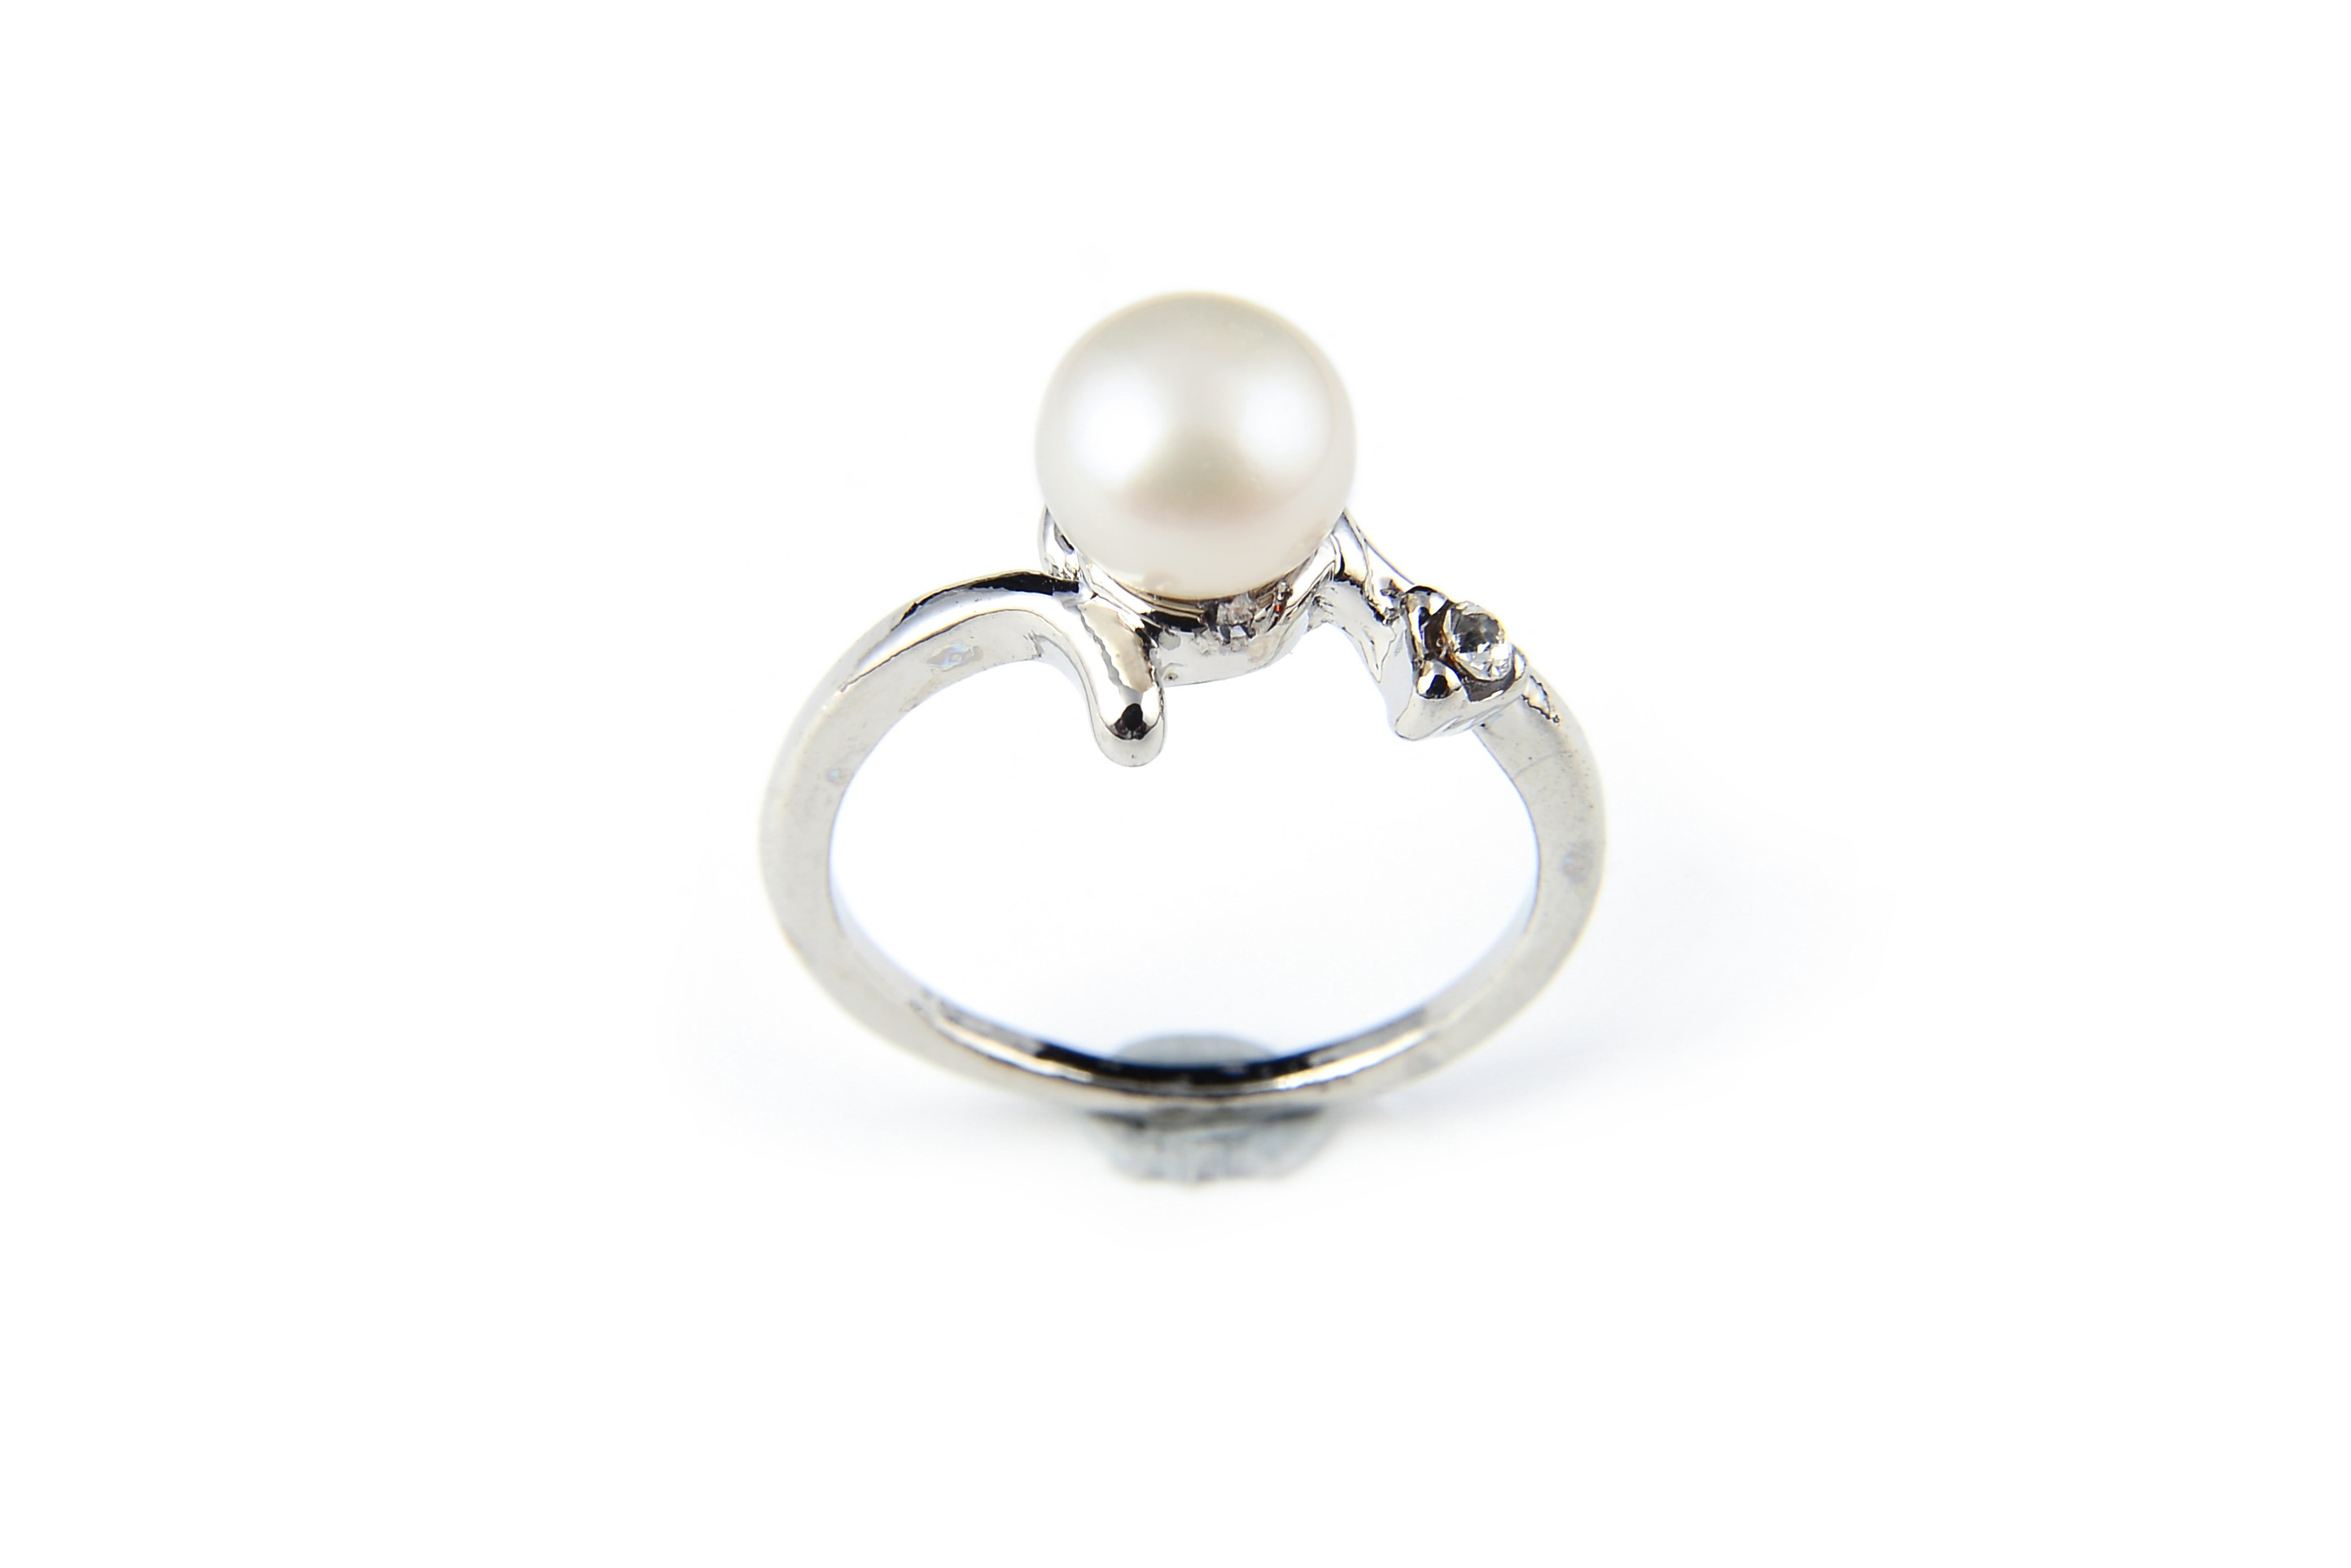 7.5mm AAA White Freshwater Cultured Pearl Ring - Various sizes -rg64